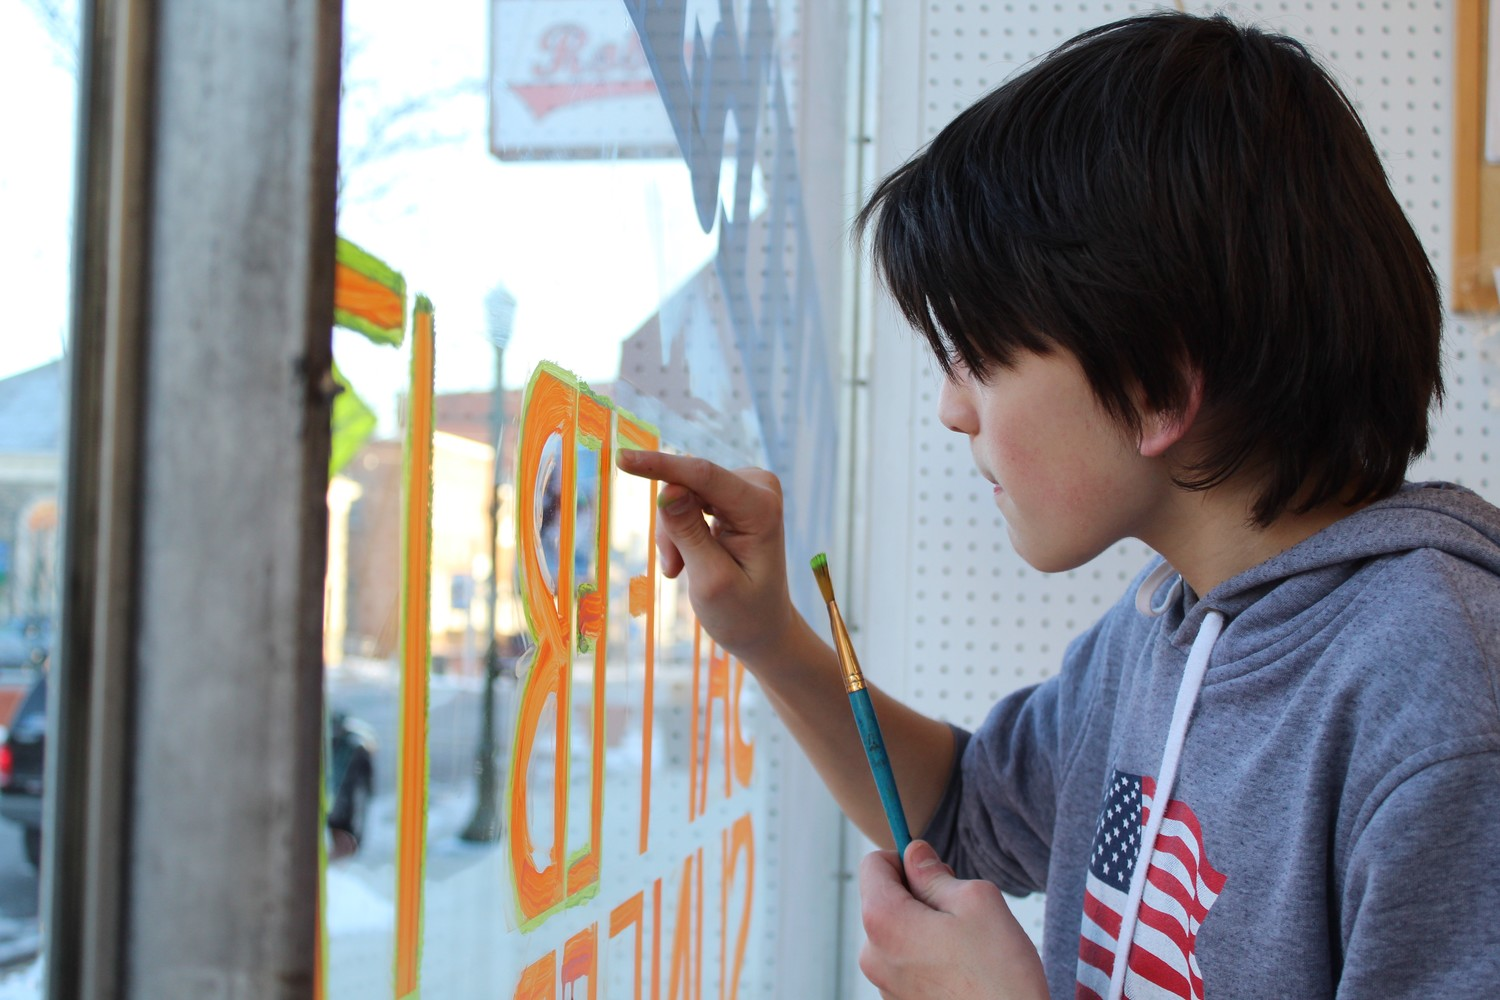 Tyler Ditzler paints the front window of the thrift shop.